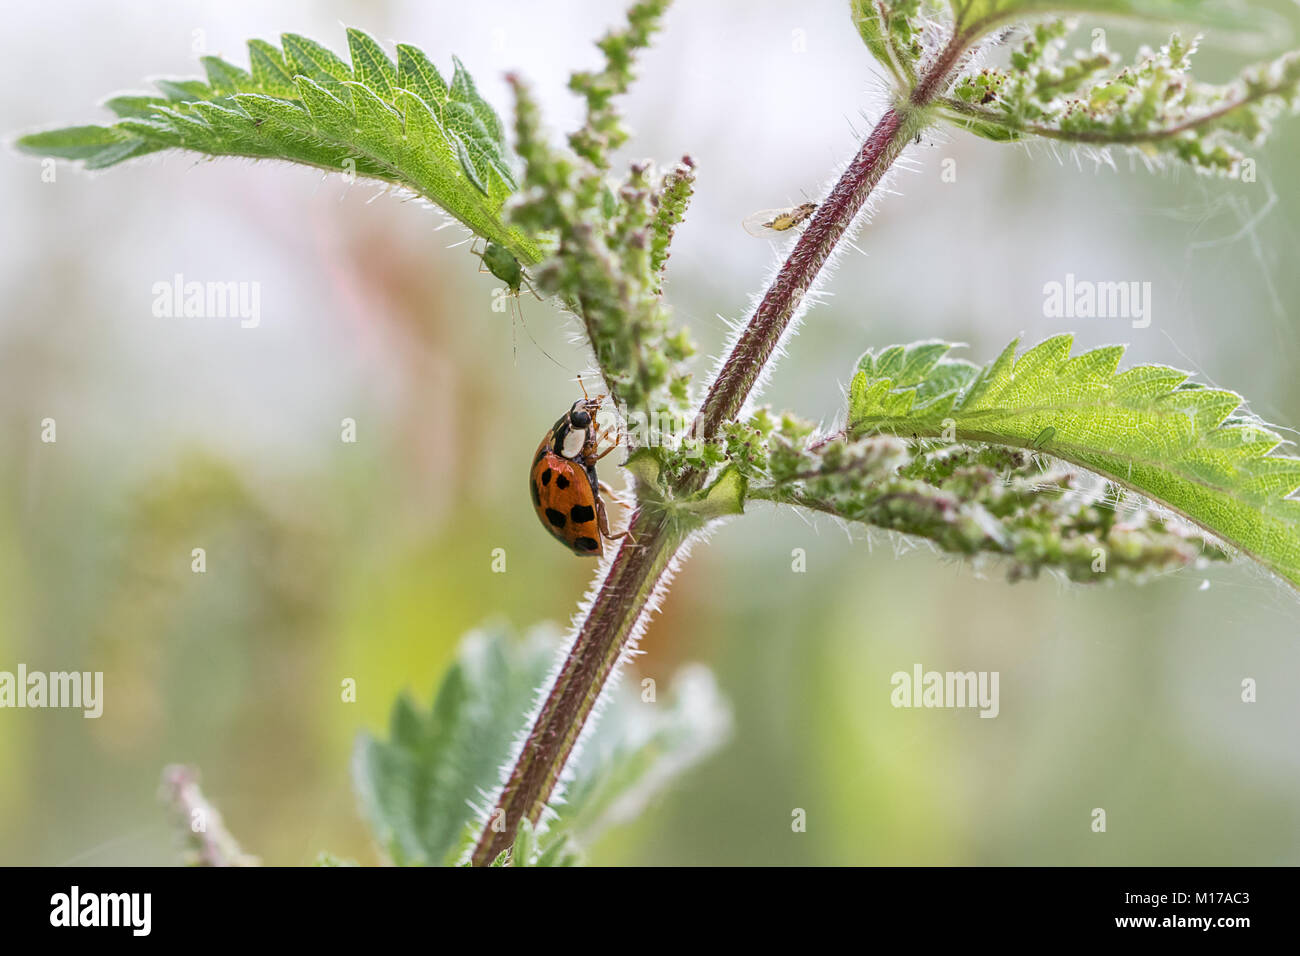 Ladybird on plant  stem. Close up in frame with out of focus background - Stock Image